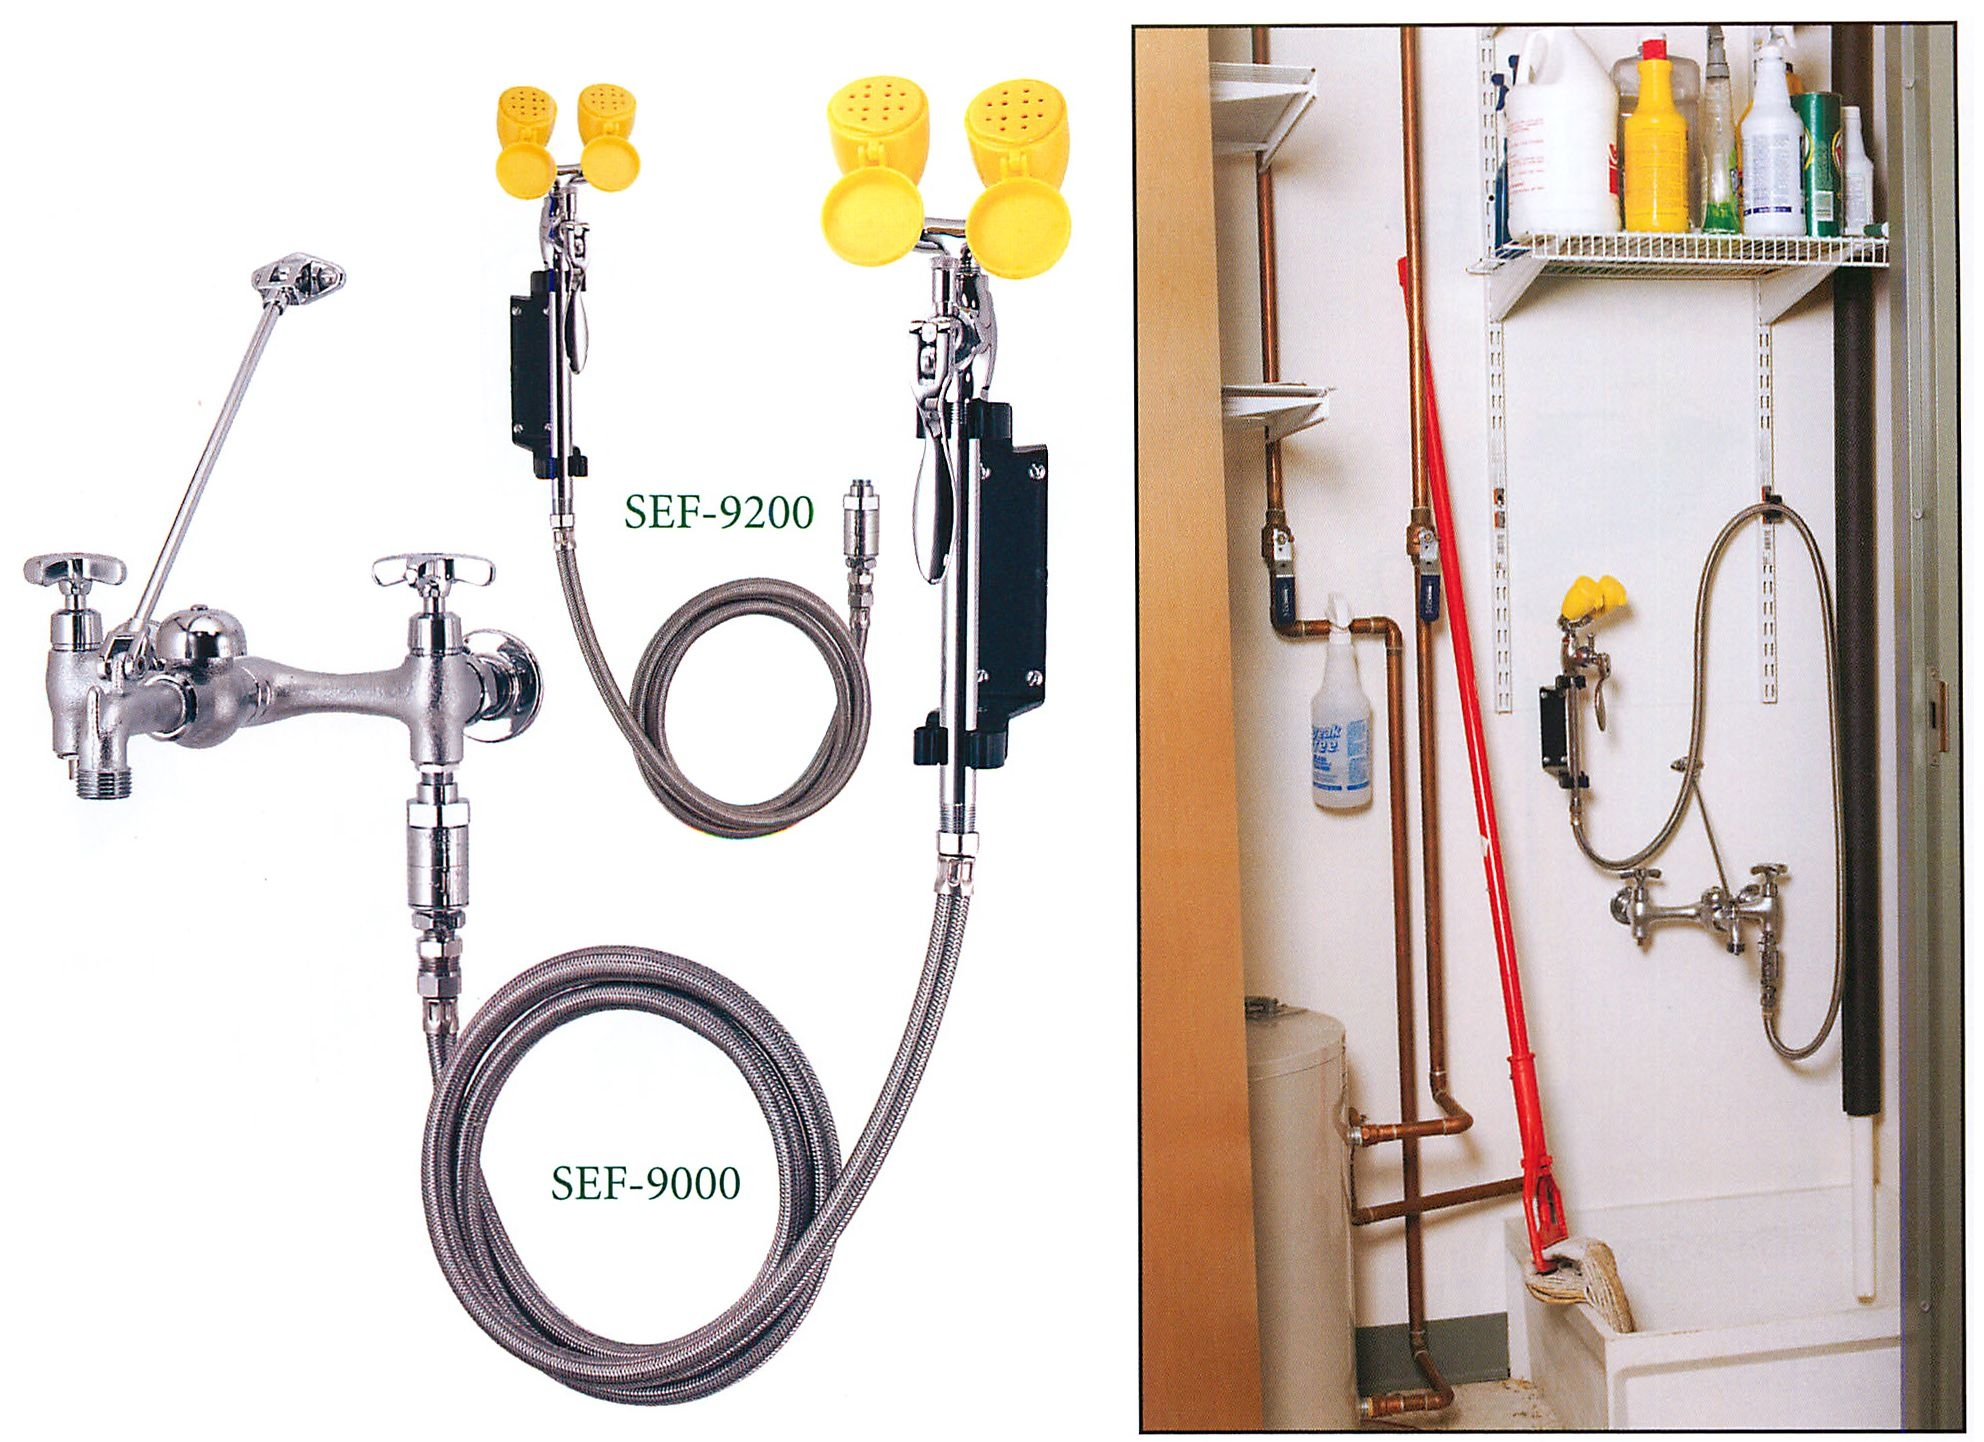 Ideas, speakman 2013 page 2 combination eyewash and faucet part 2 within measurements 1984 x 1442  .